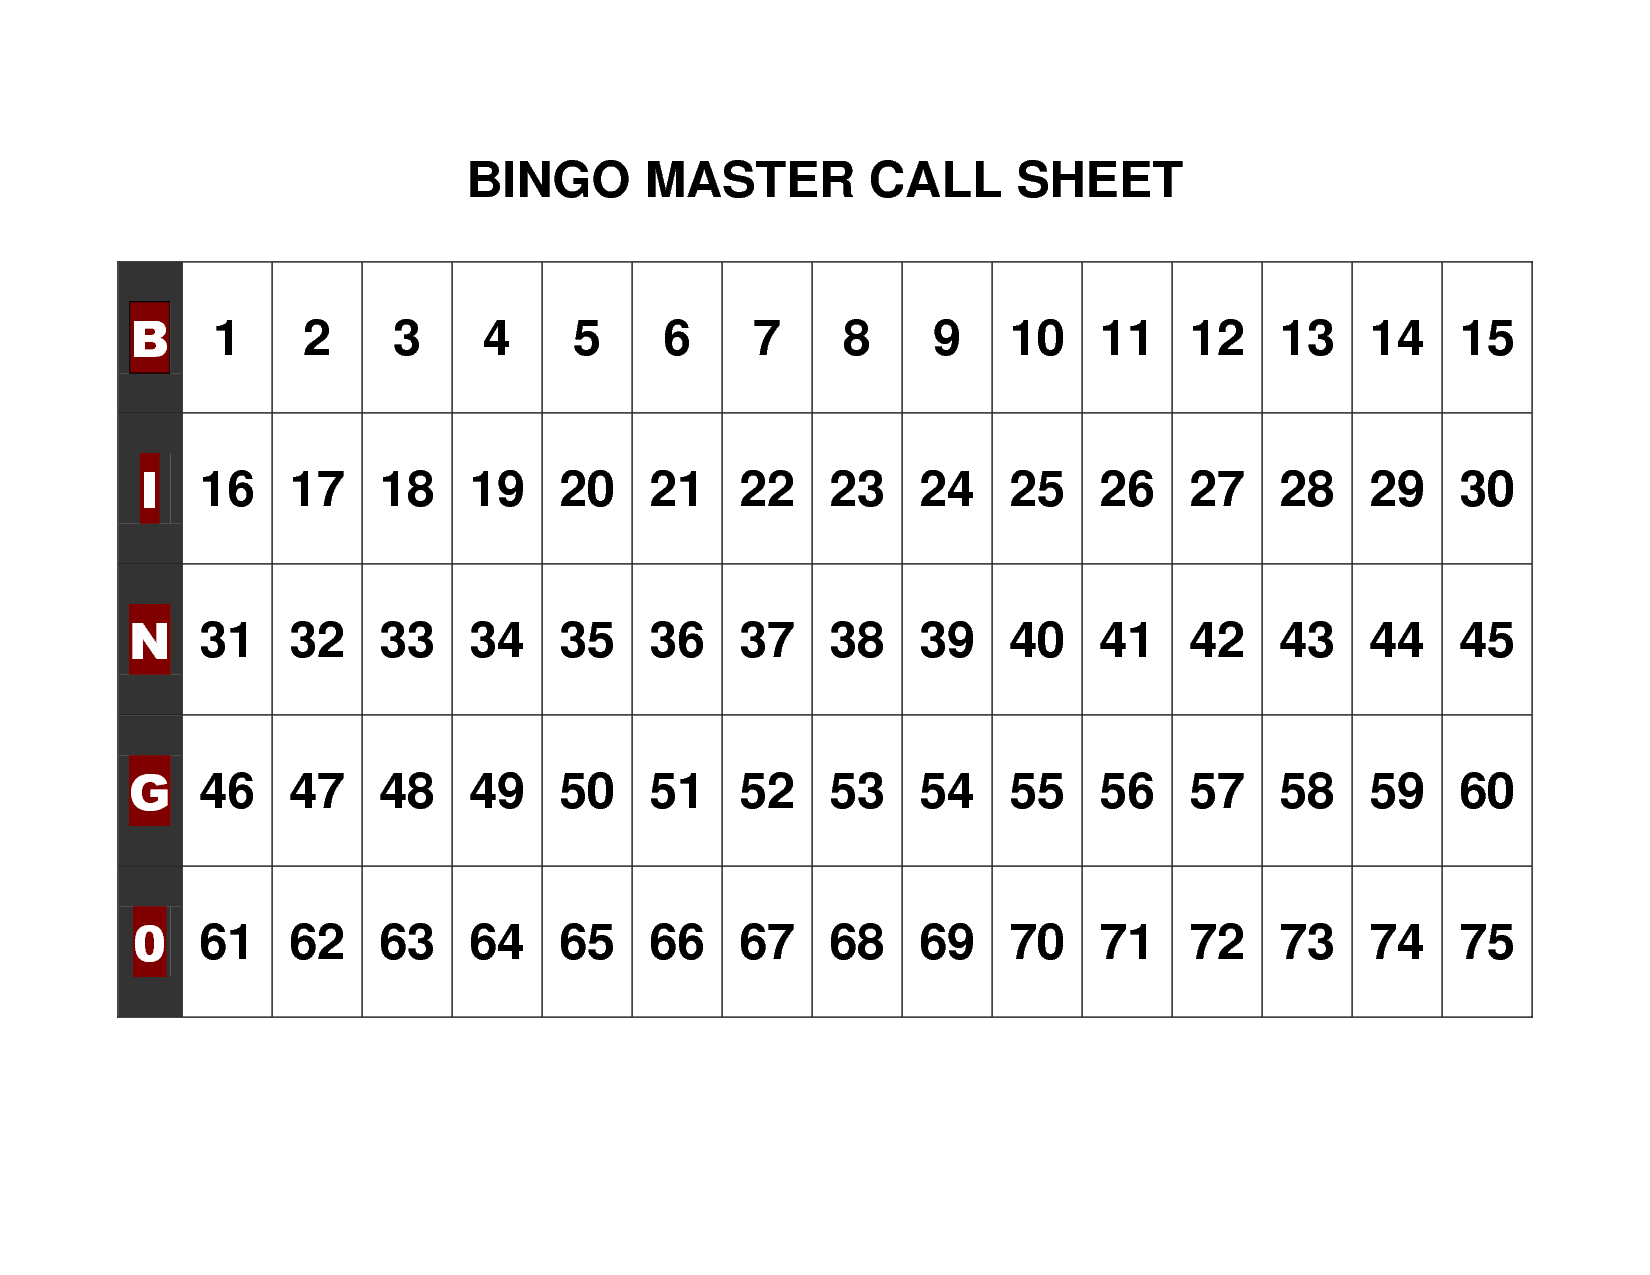 Modest image with printable bingo numbers 1-75